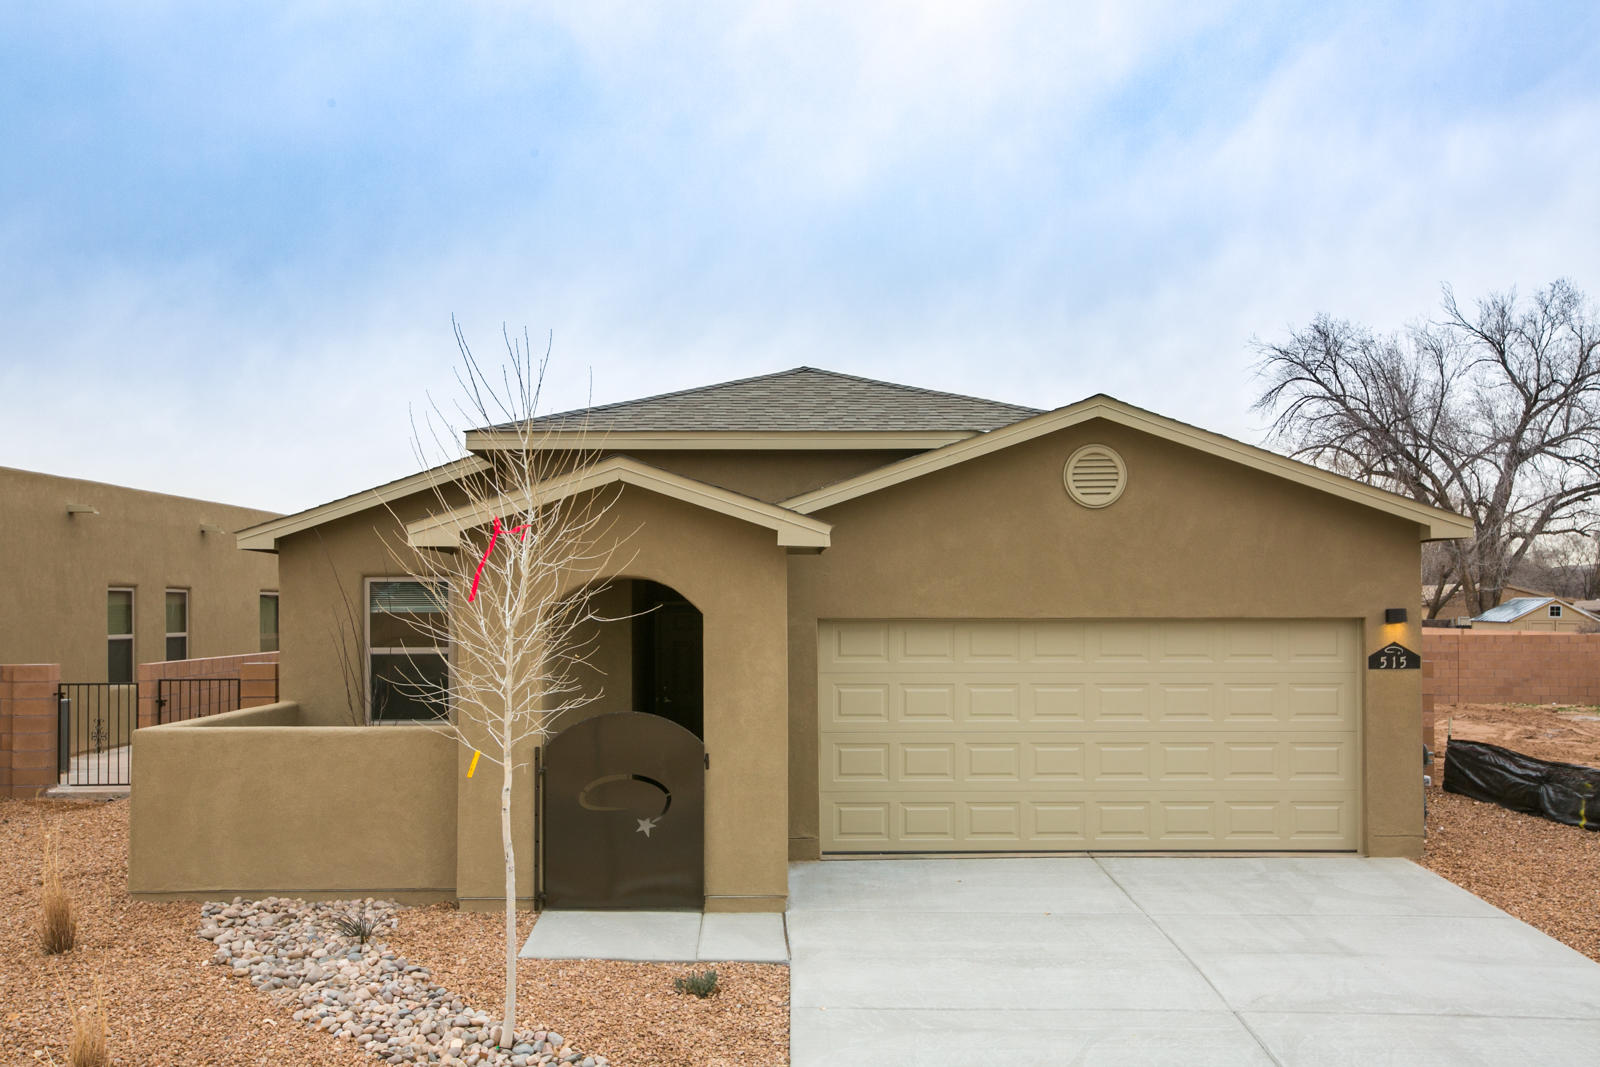 New construction ready Feb/2021. Pics are of model.Actual colors and finishes may vary. Front courtyard is not included. Buy now and make your own color selections. Gated community in the heart of Abq and minutes from the zoo, aquarium, museums, etc. Beautiful luxury bath with separate shower and tub, double sinks, rainhead and walk in closet. Desirable open floor plan with large sliders in the living area opening out to the covered patio. Kitchen has a great island and full Samsung energy efficient appliance package including SxS refrig, stove, dw, microwave all in SS. Washer and dryer are also included in white. Granite kitchen counters. Ltd 10 yr warranty, window coverings, and so much more at this affordable price!